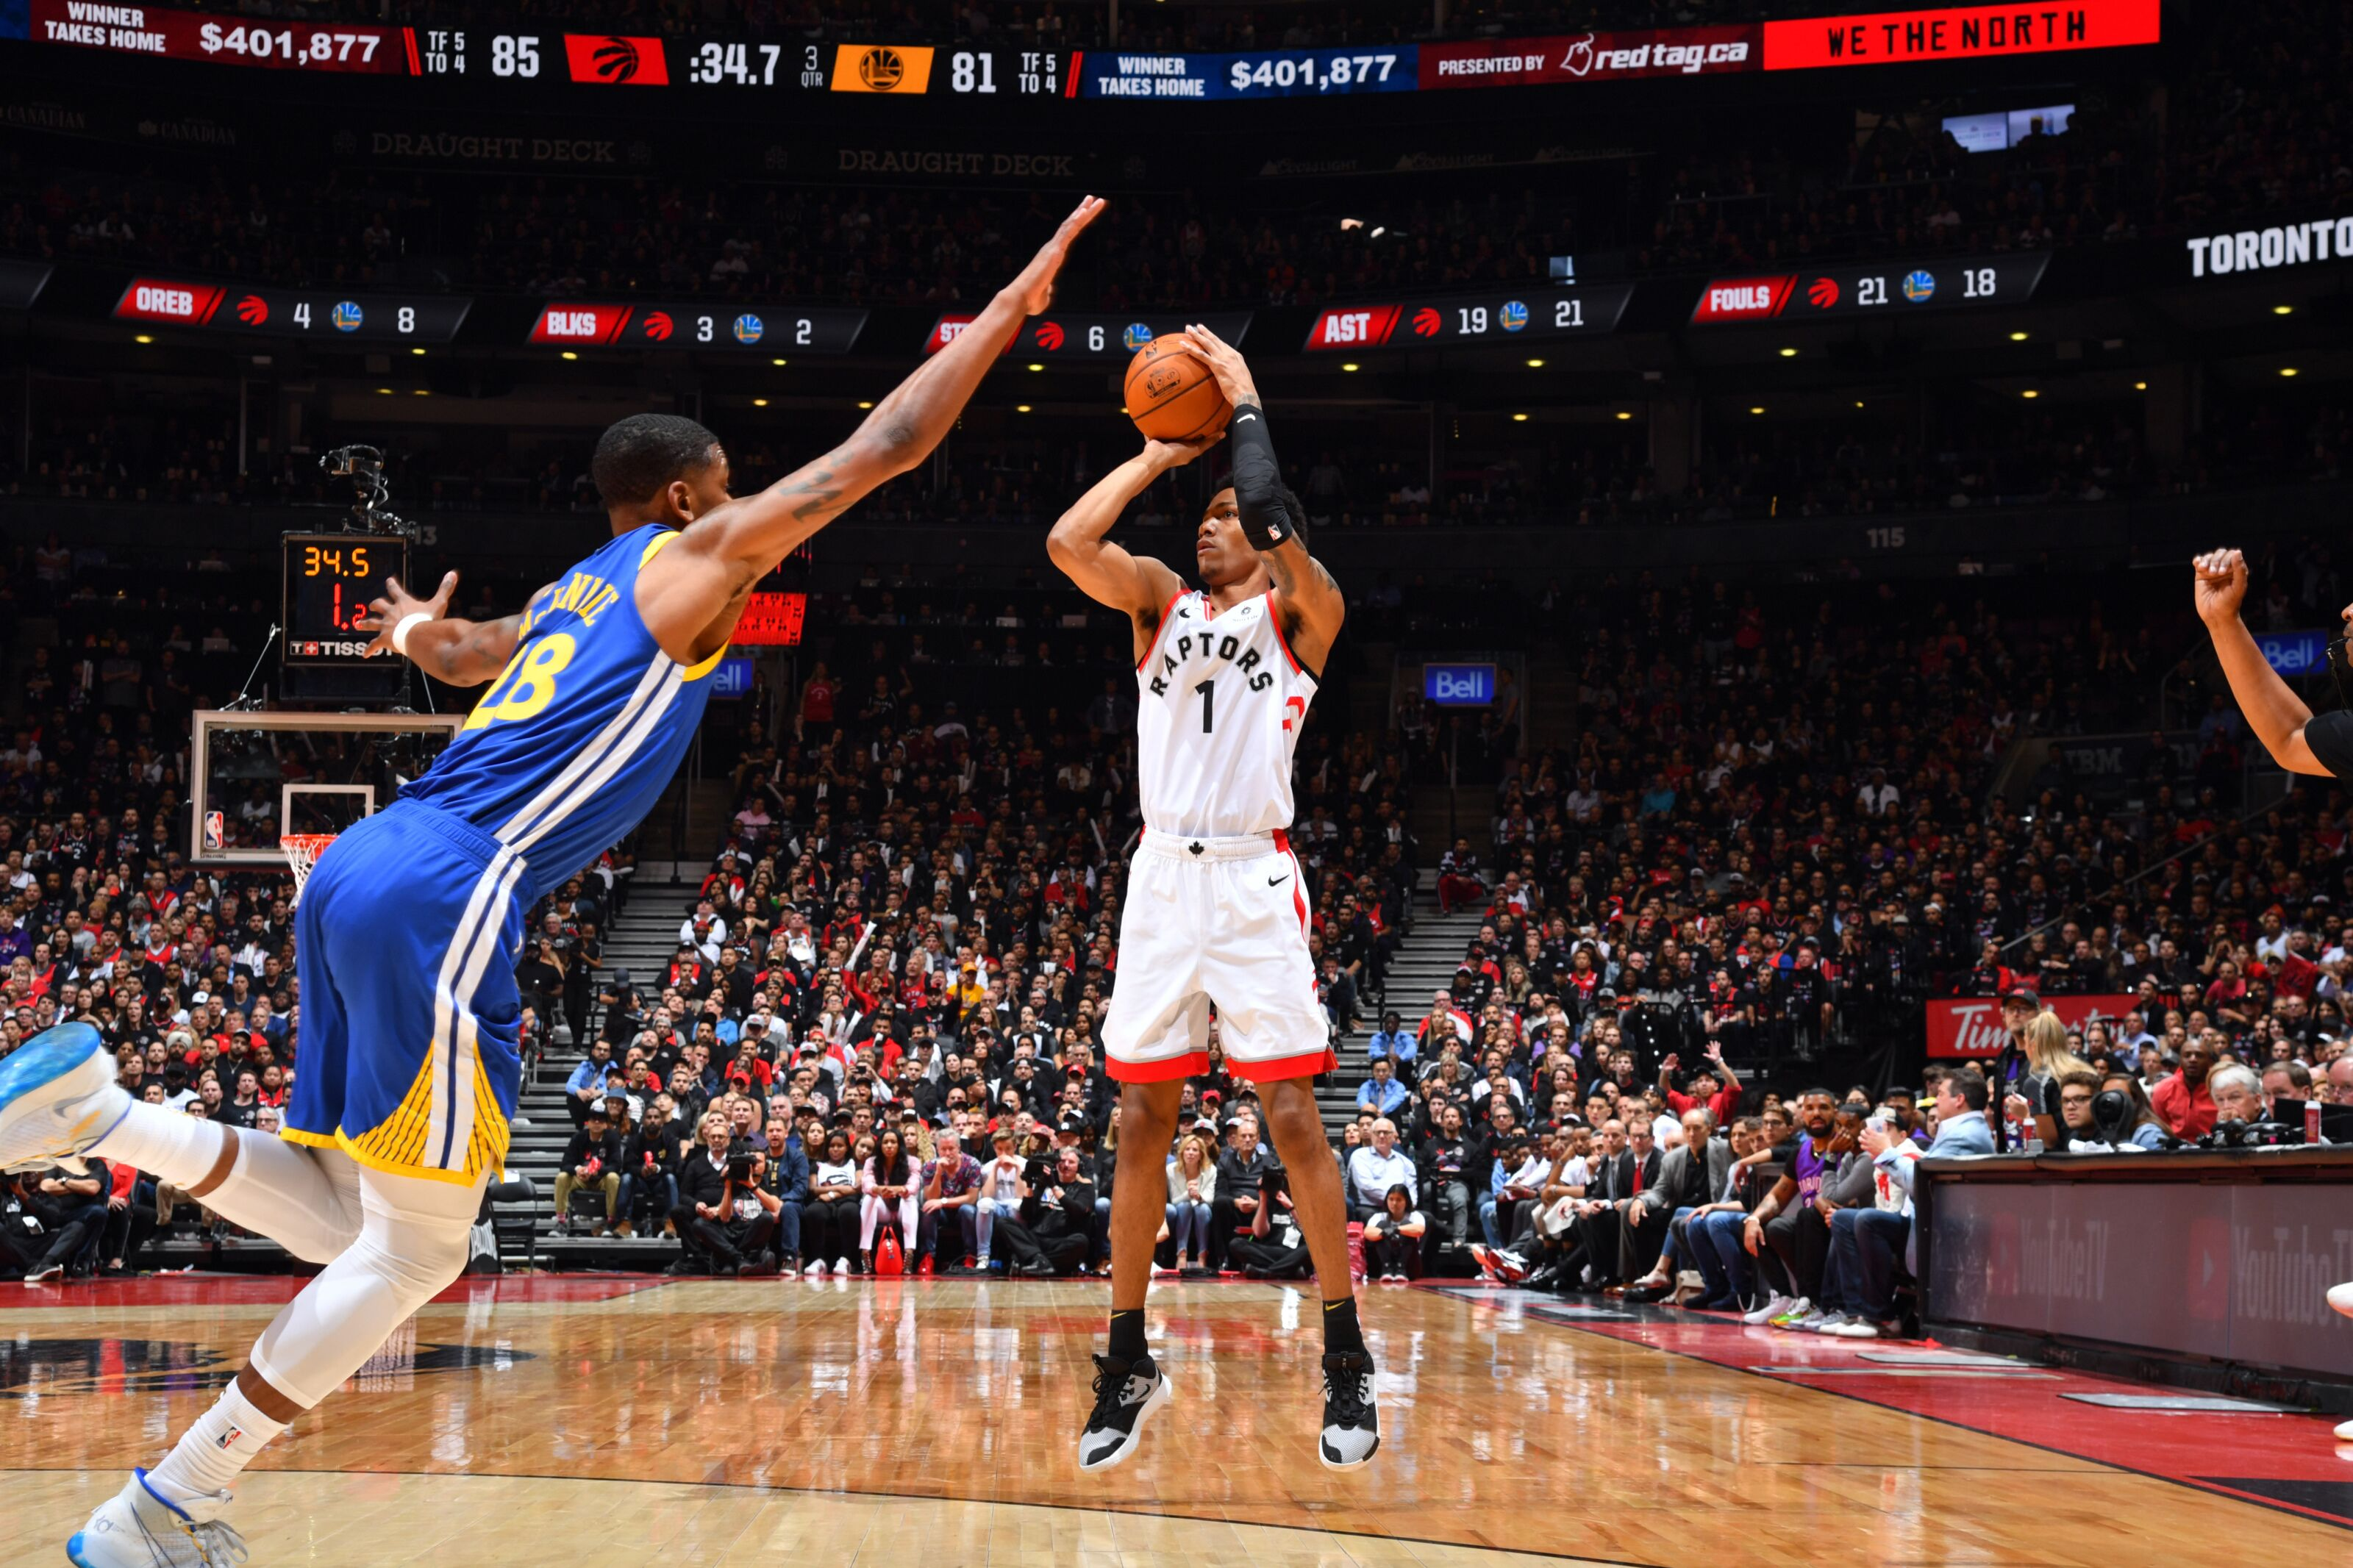 Re-signing Patrick McCaw is shrewd business for Toronto Raptors